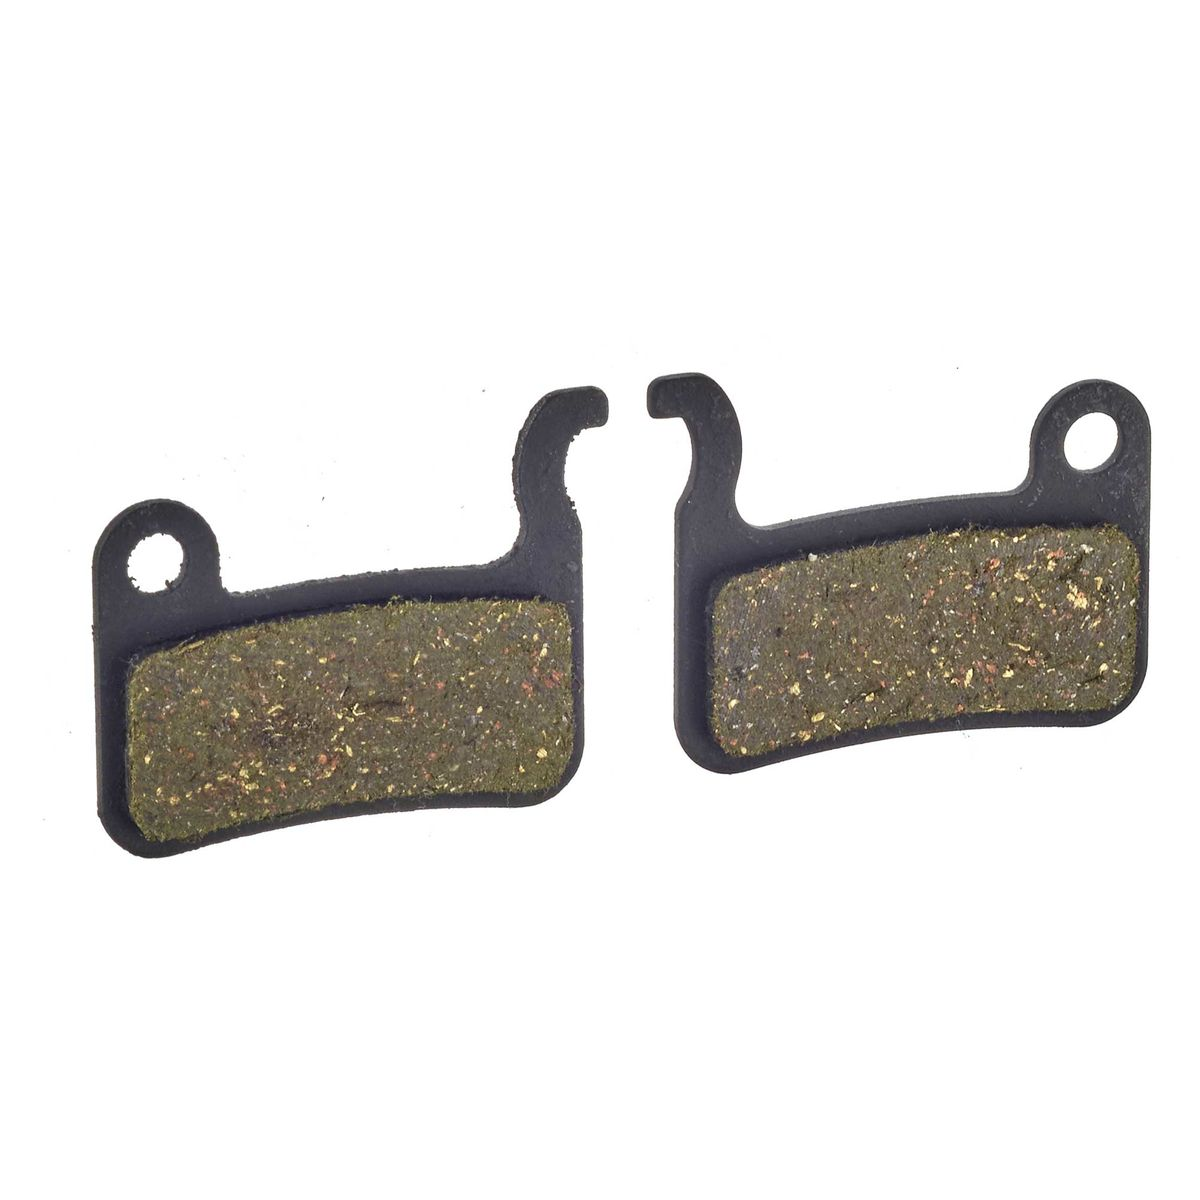 AirCon Brake Pads for XTR 2000-2011